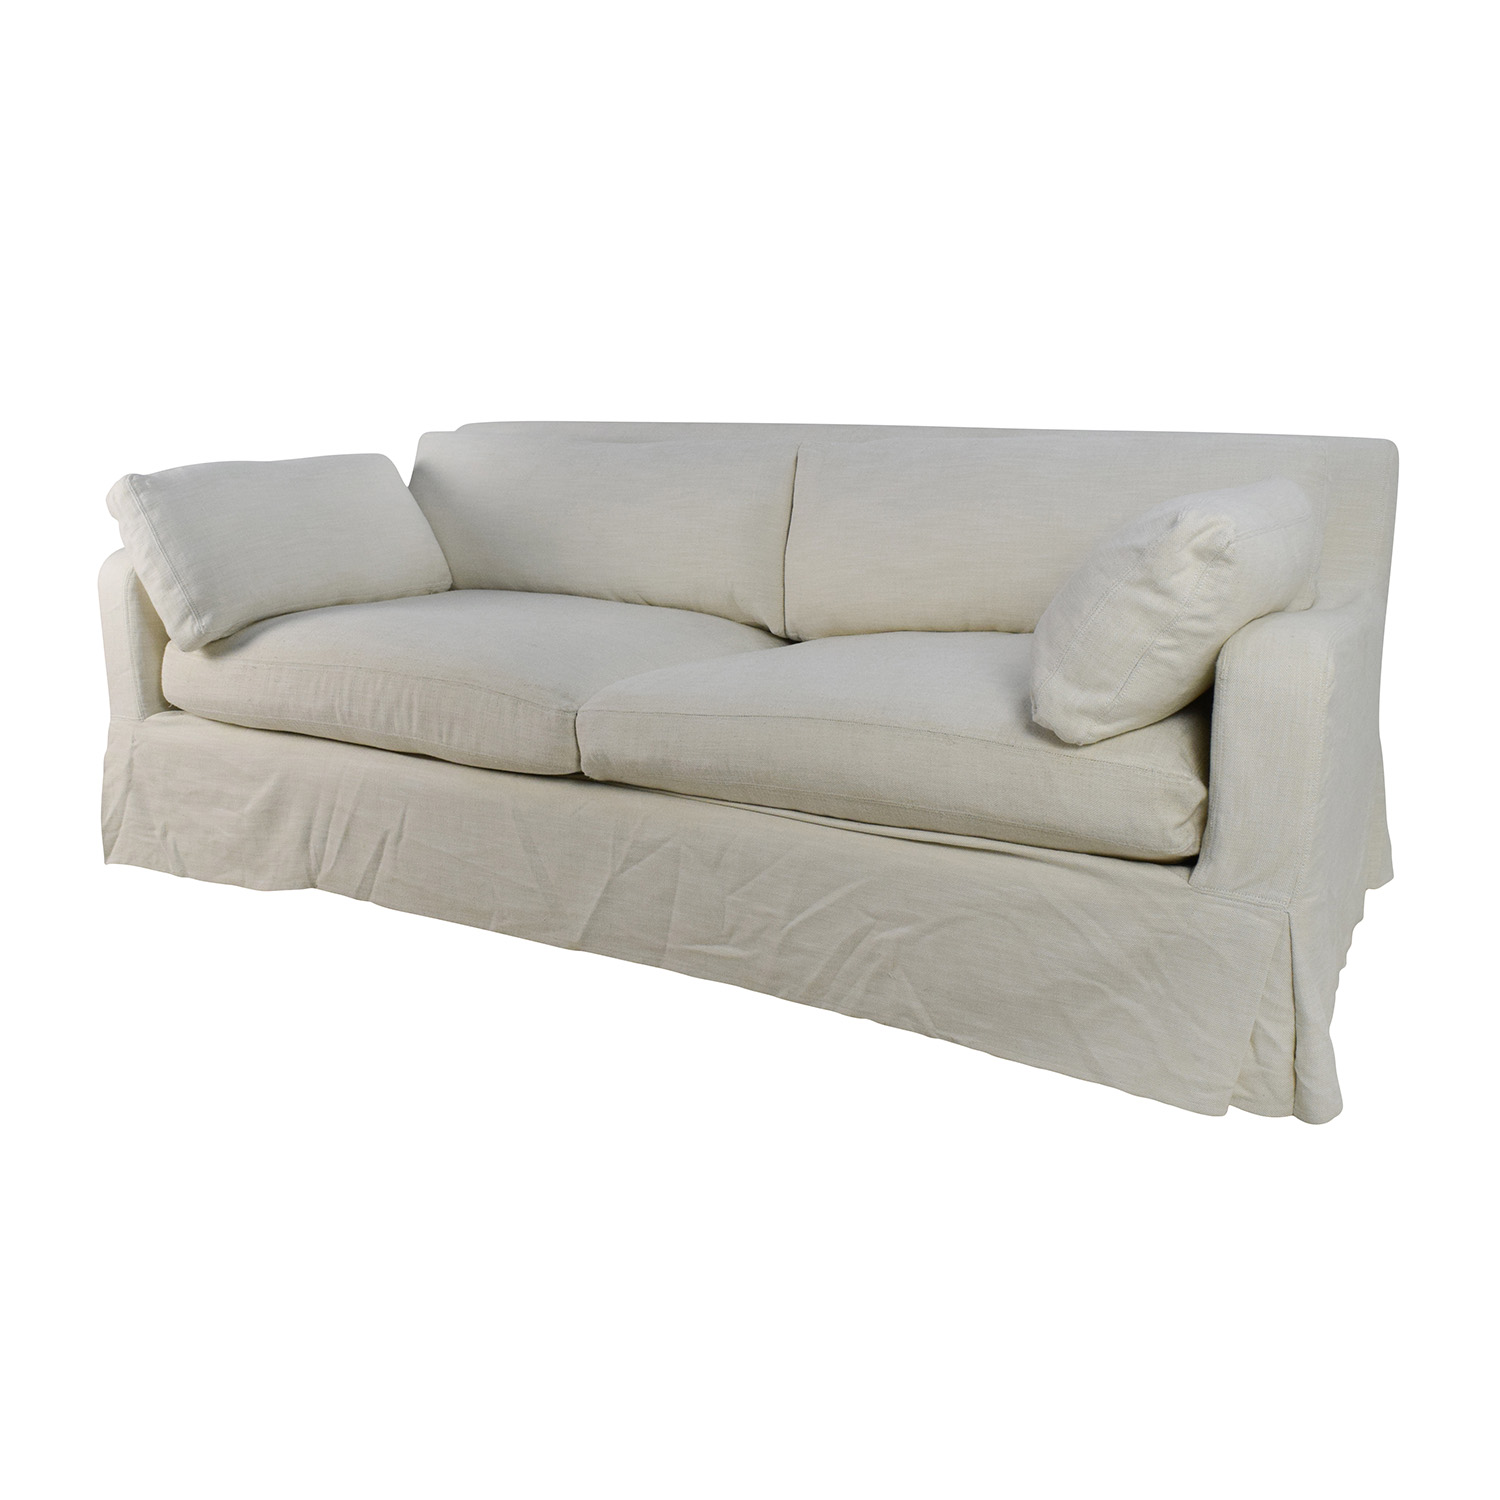 Restoration Hardware Sofa Slipcover English Roll Arm Slipcovered Sleeper Sofa Thesofa